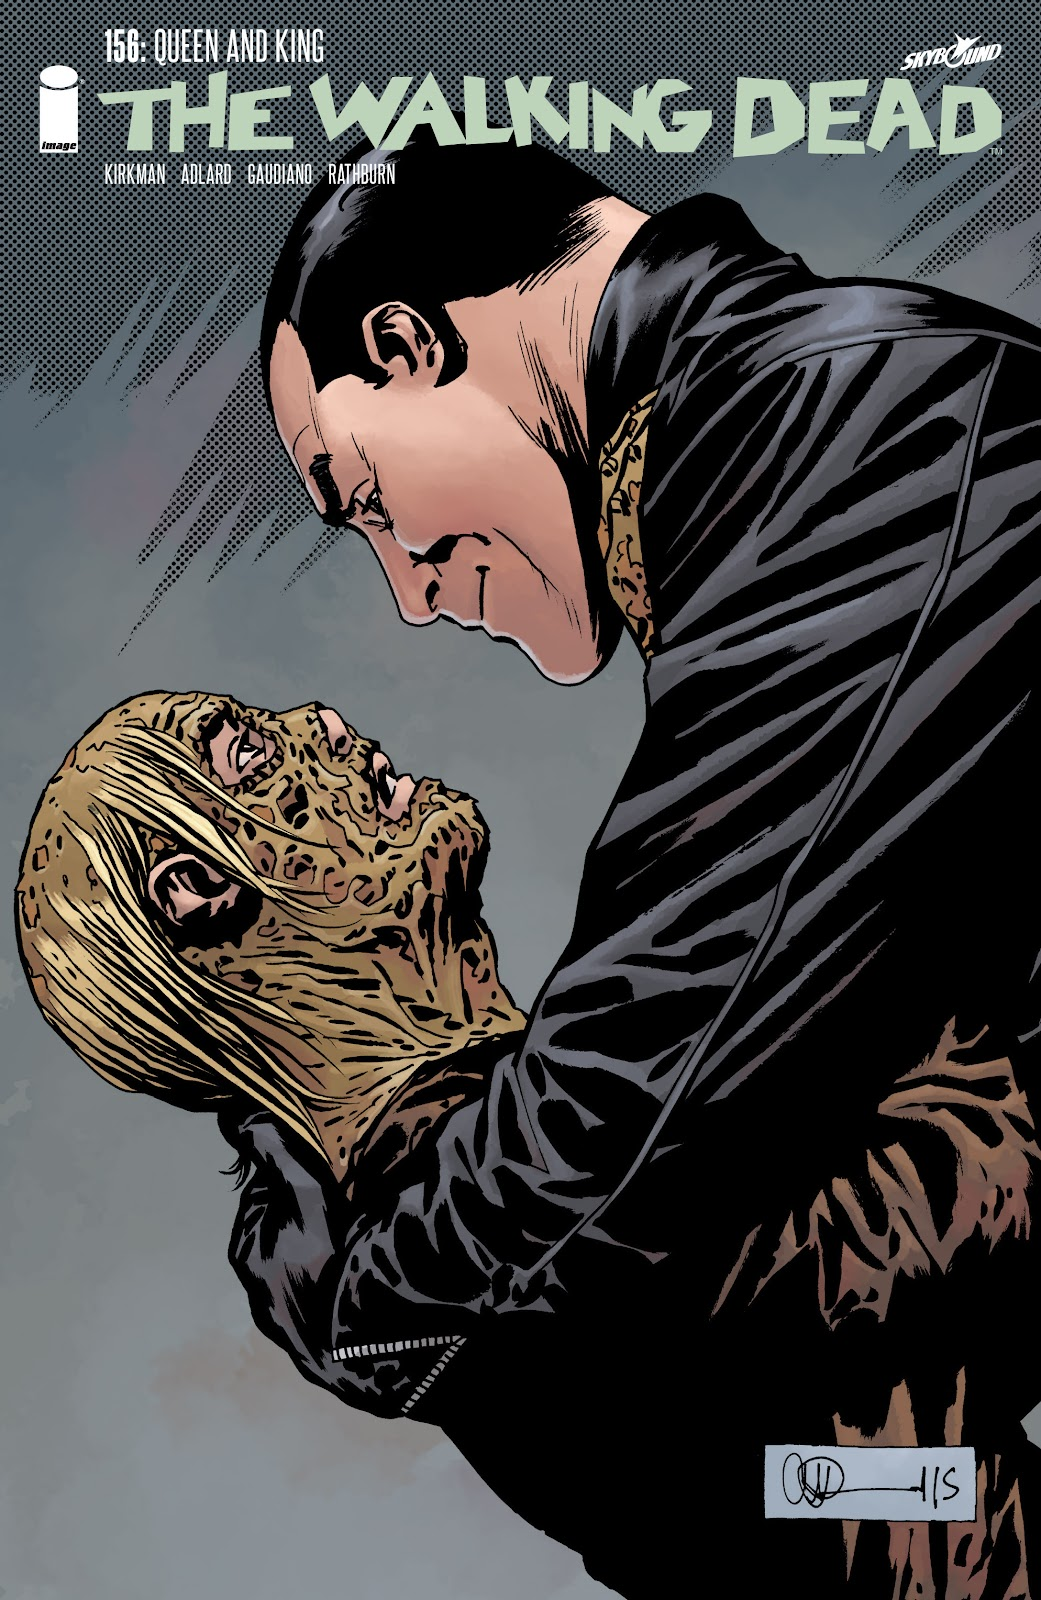 The Walking Dead Issue #156 Page 1